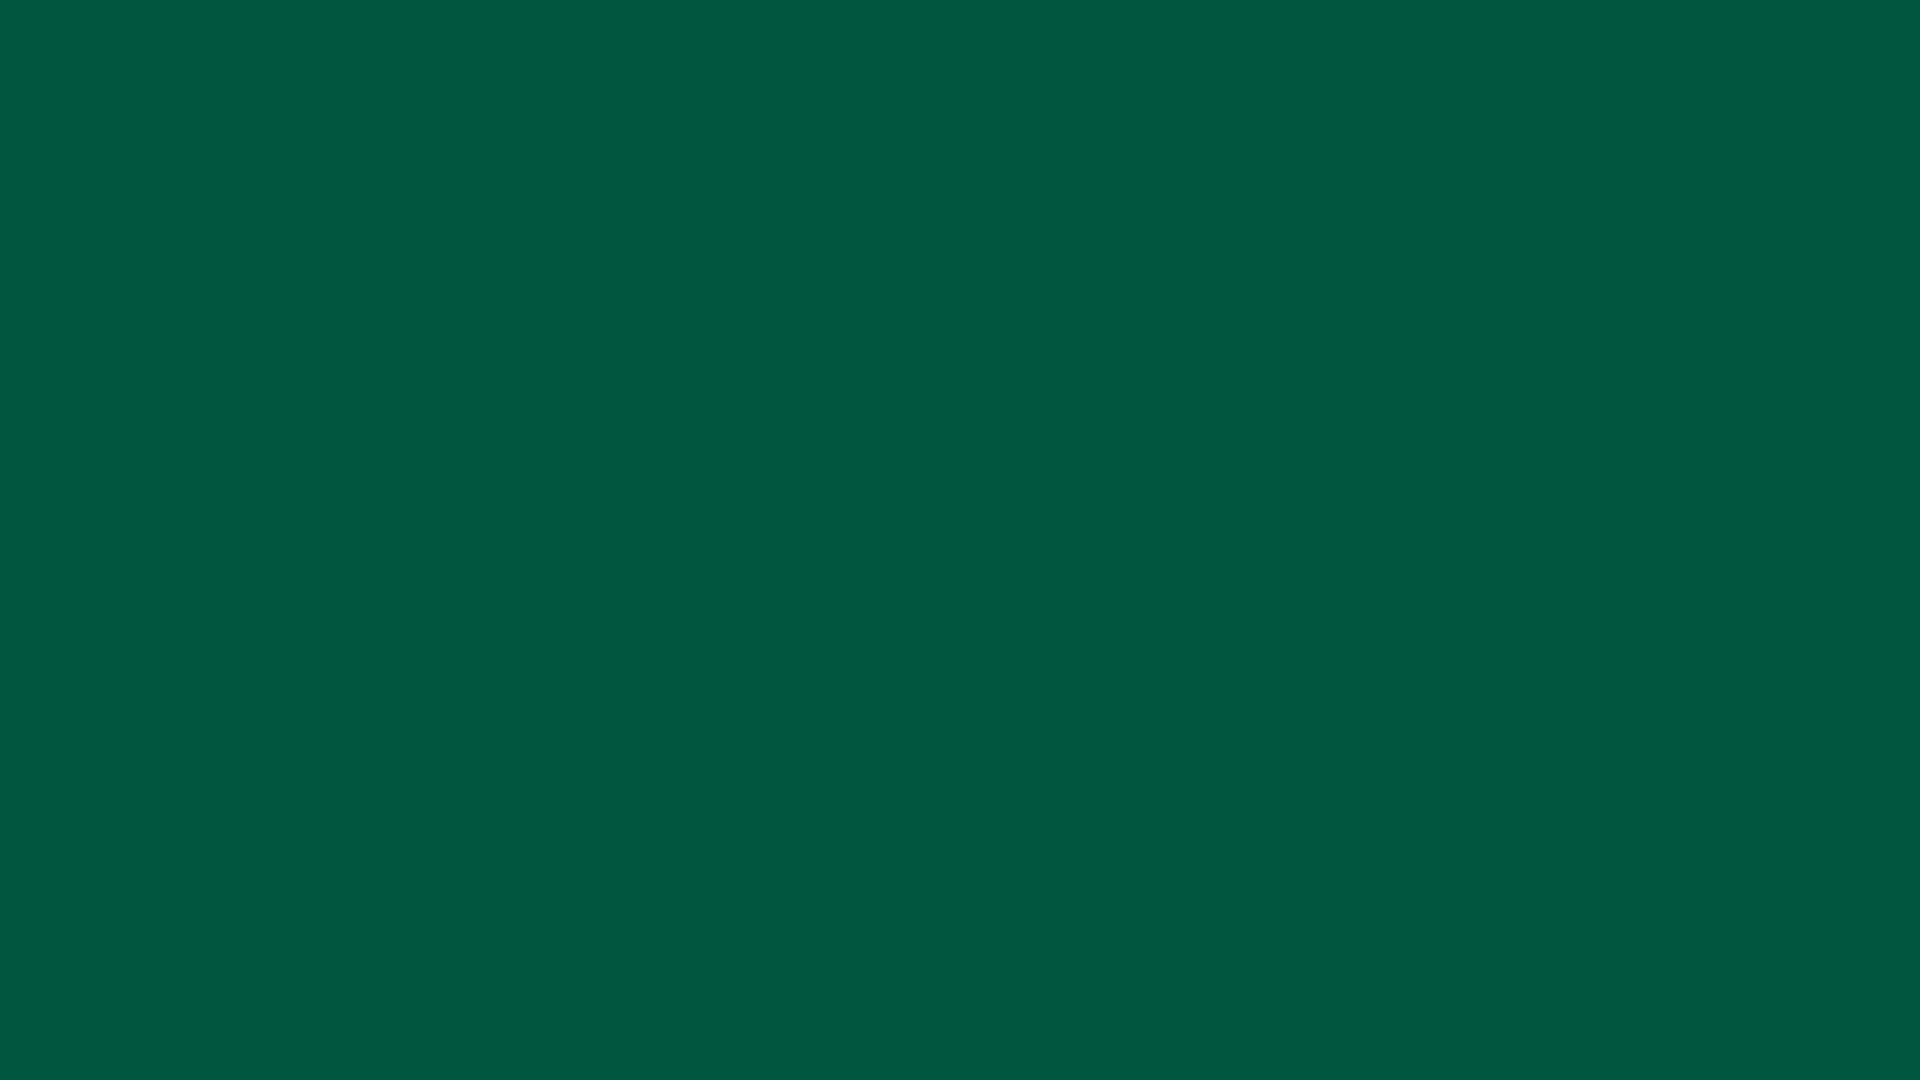 1920x1080 Sacramento State Green Solid Color Background